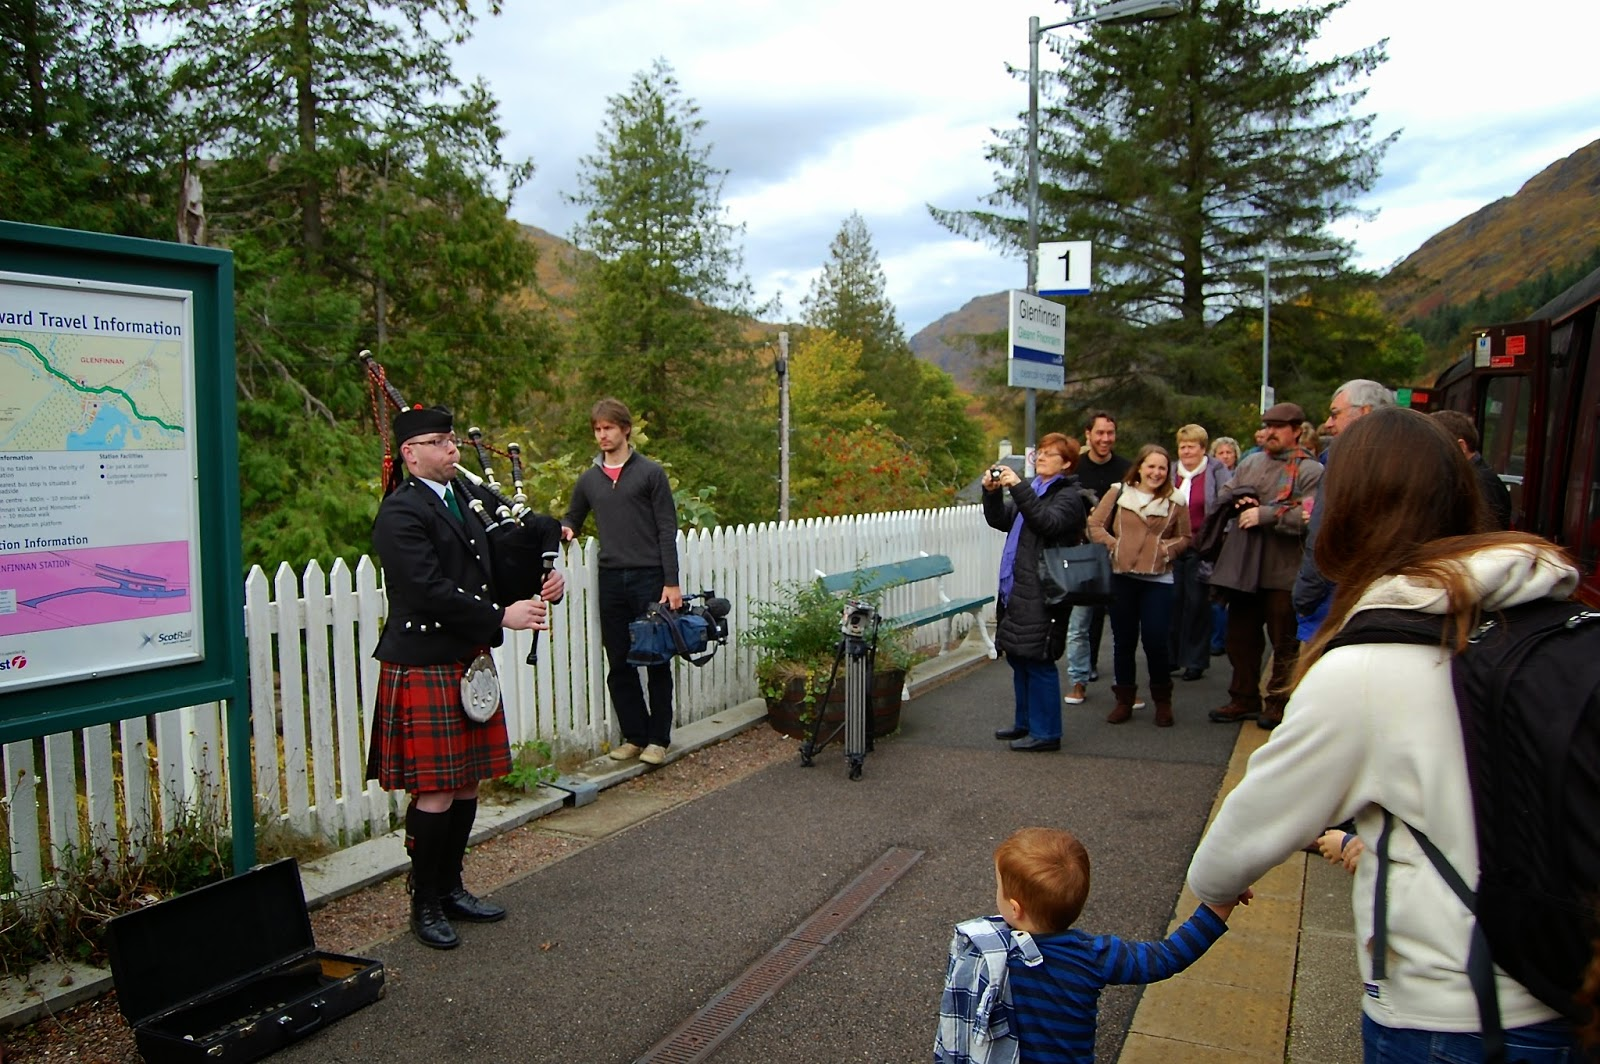 Bagpiper at the Glenfinnan train station